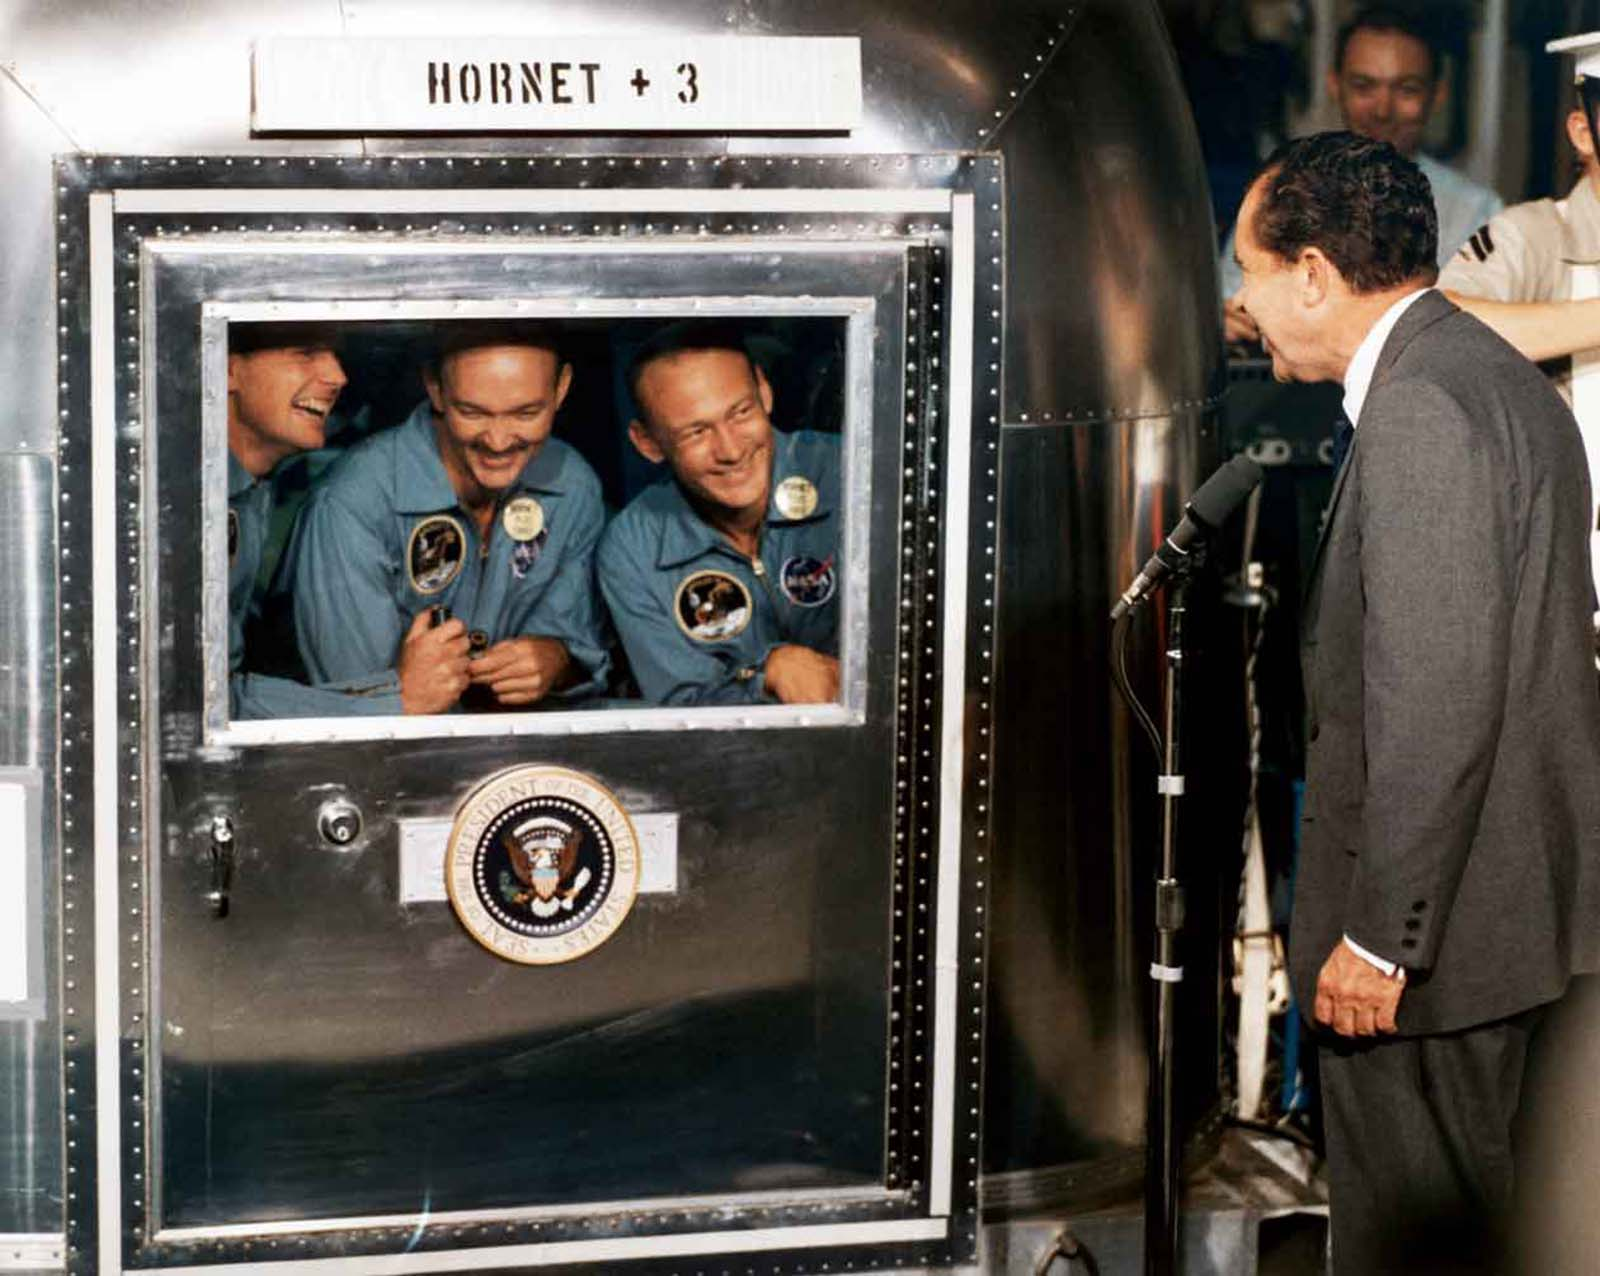 After Apollo 11 returned home, (left to right) Neil Armstrong, Michael Collins and Buzz Aldrin, in mobile quarantine facility, received a visit from President Richard Nixon (July 1969).